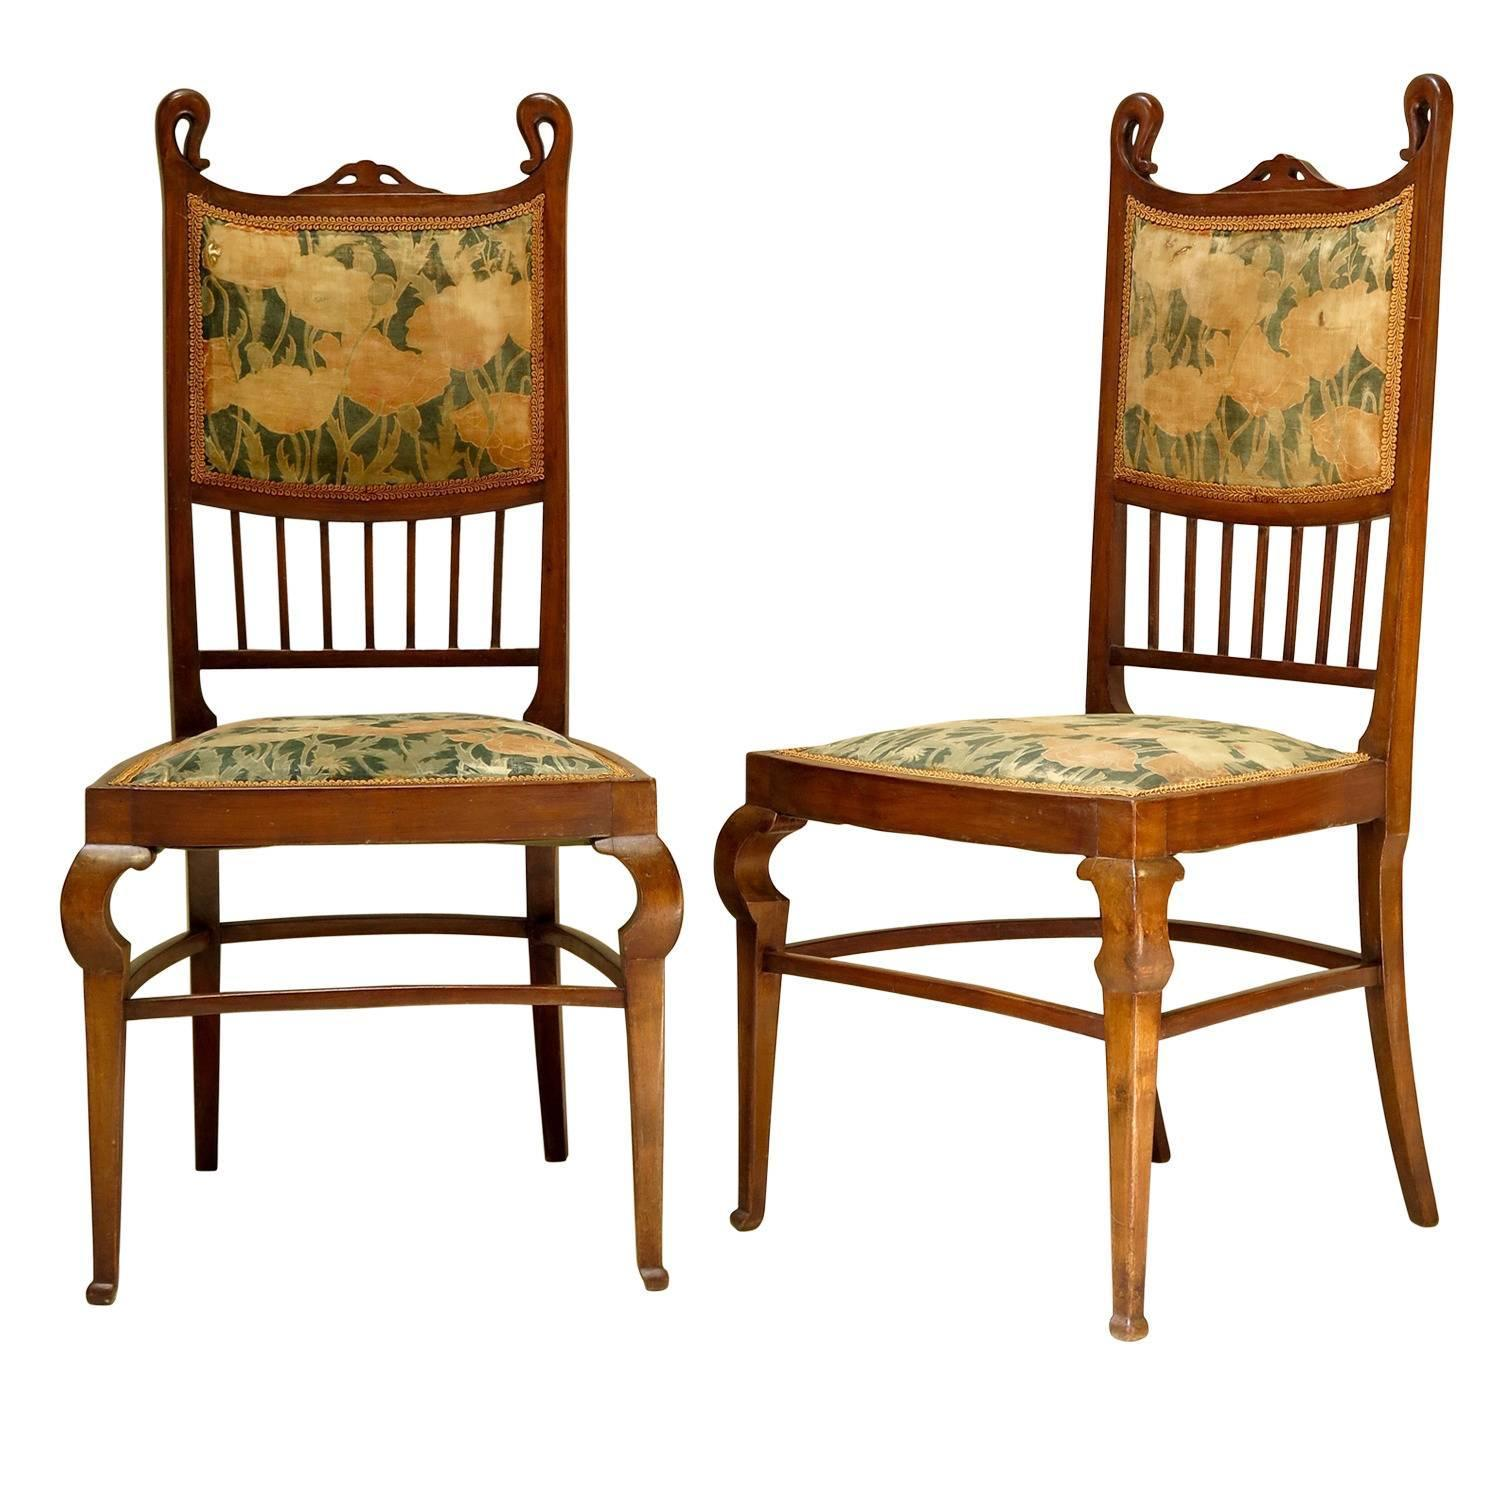 Set of six art nouveau dining chairs france early 1900s for Set of 6 dining chairs